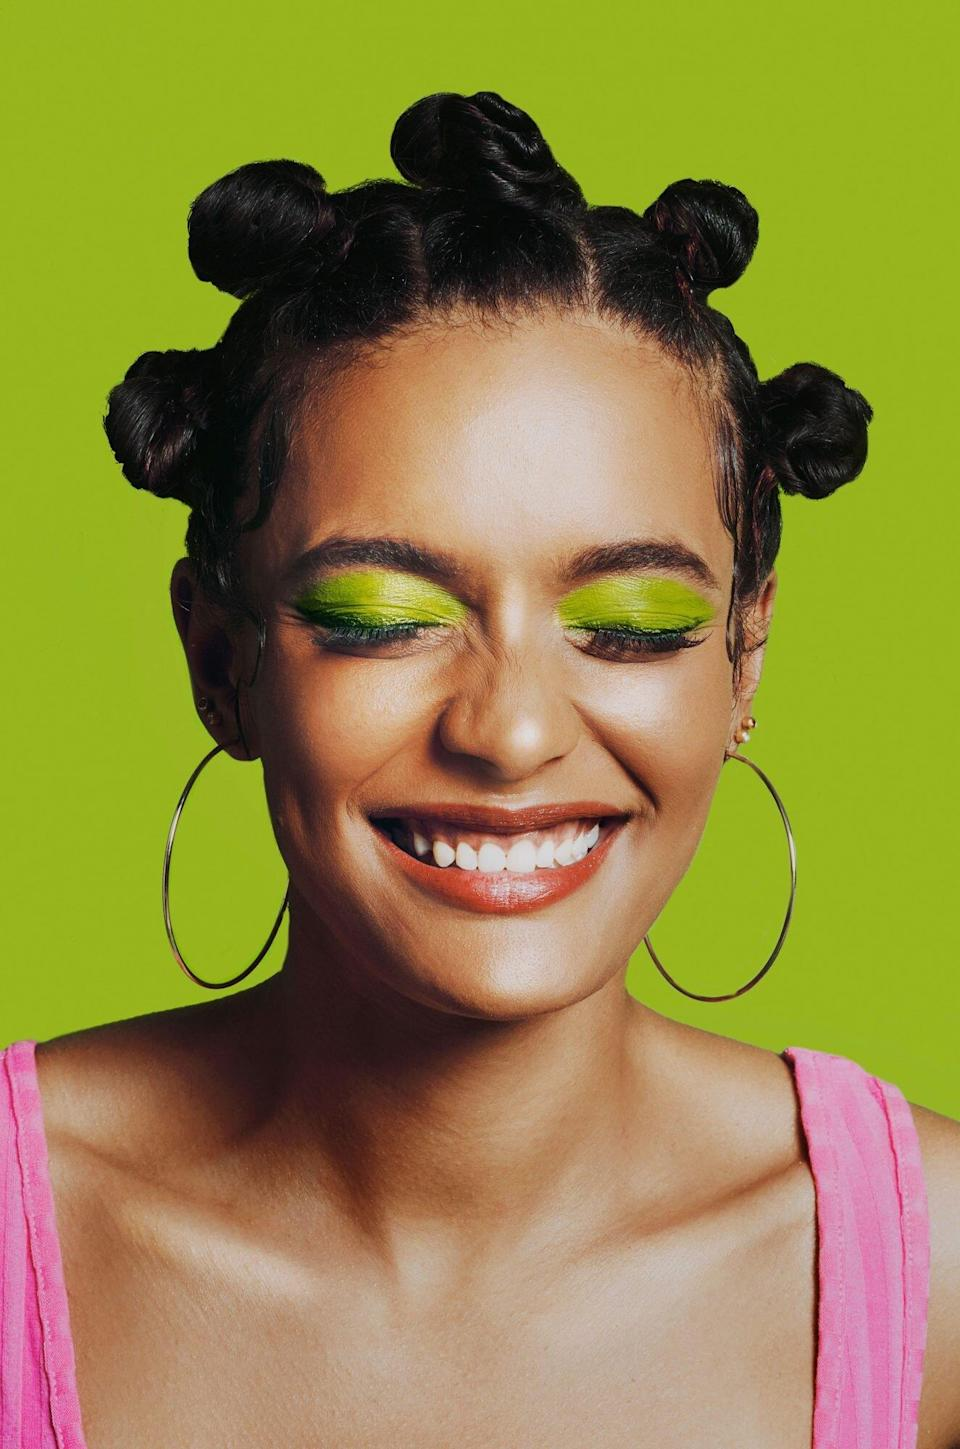 Colorful Eye Makeup Ideas for All Your Post-Quarantine Summer Festivals